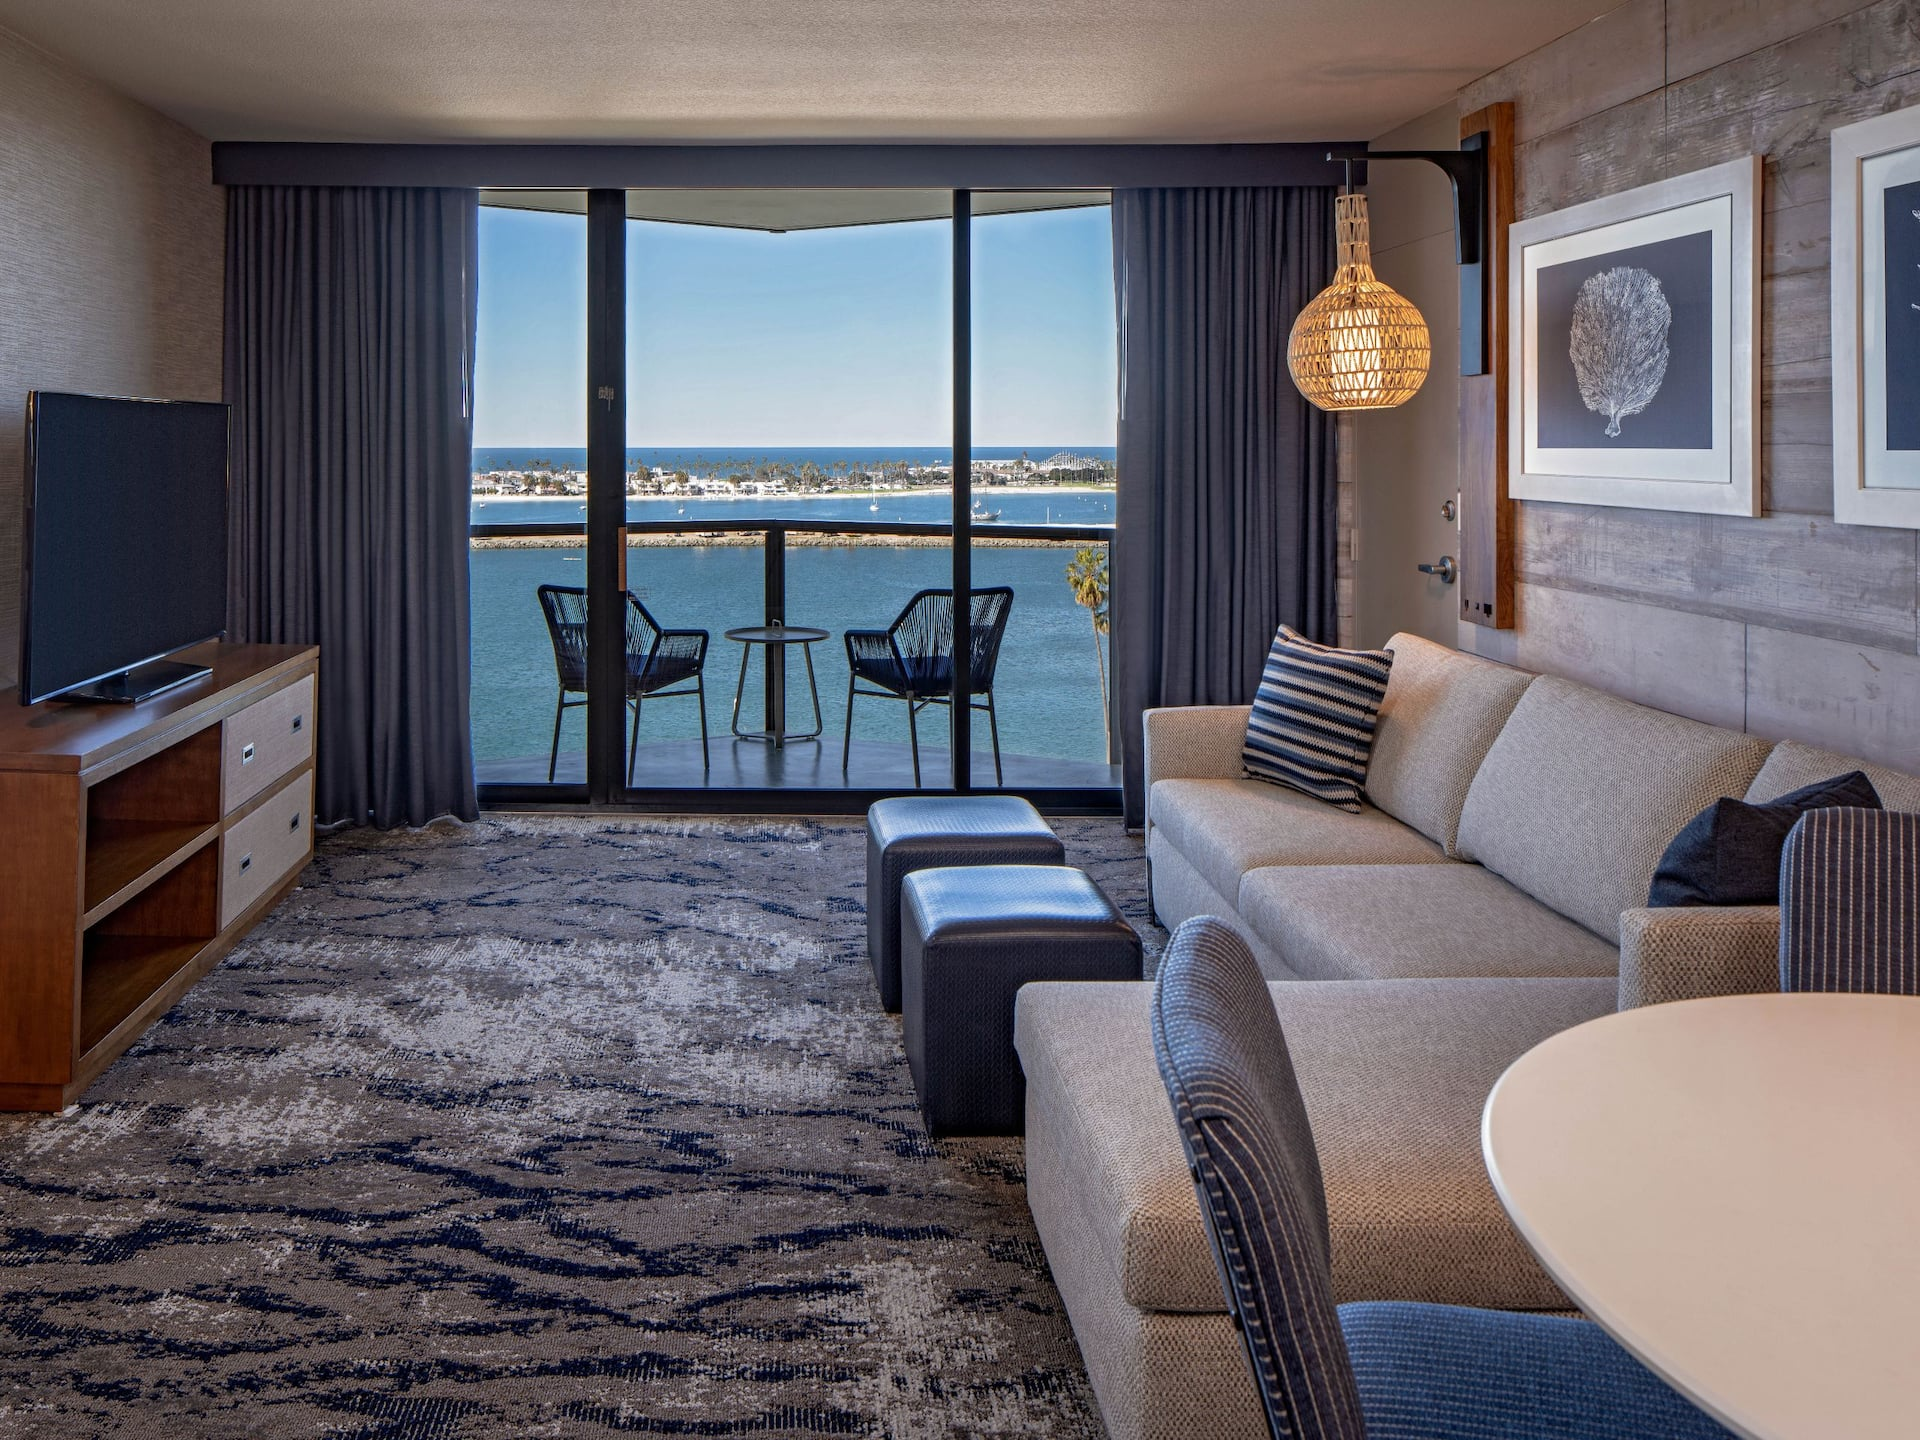 Hyatt Regency-Mission-Bay-Spa-and-Marina/King Window View